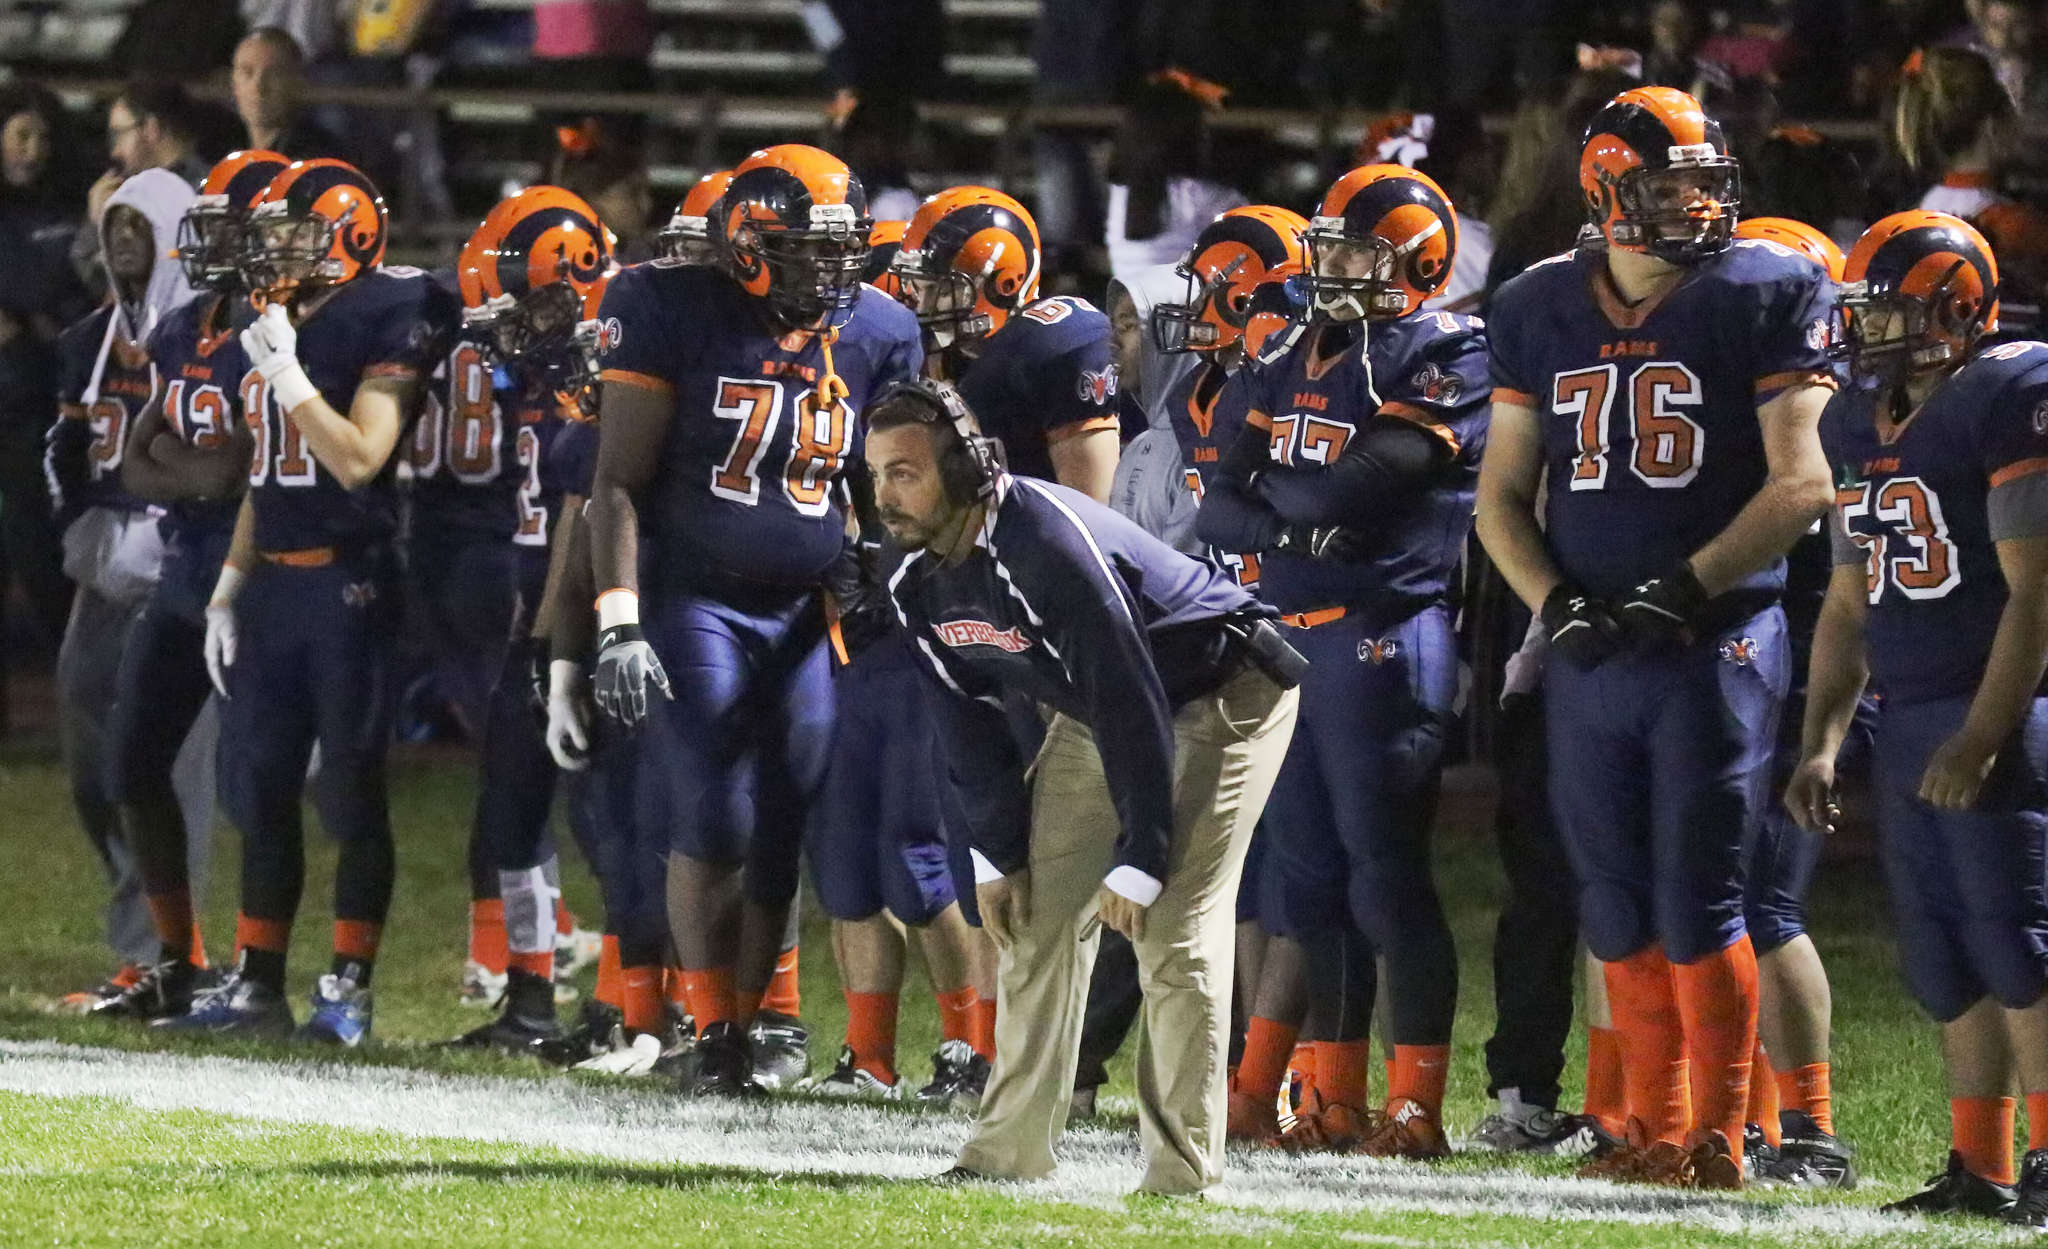 Overbrook head coach Frank Wilczynski watches his team´s 21-12 win over visiting Haddon Heights on Friday. A Colonial Conference-WJFL merger would preserve old rivalries and also provide some exciting new crossover matchups. AKIRA SUWA / For The Inquirer